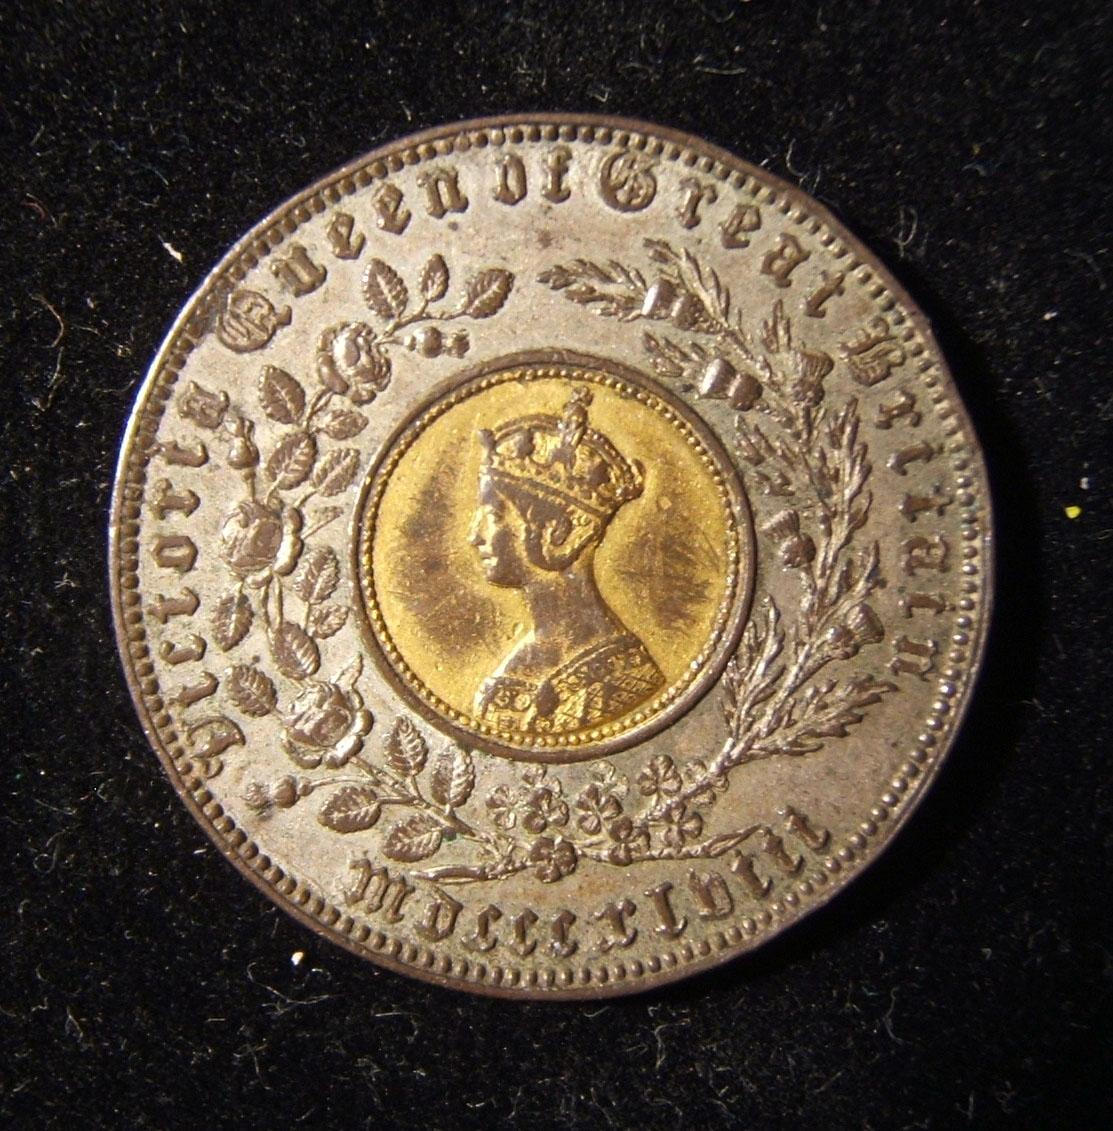 British Bimetallic Model Crown Token / Toy Money by Hyam Hyams & Joseph Moore 1848